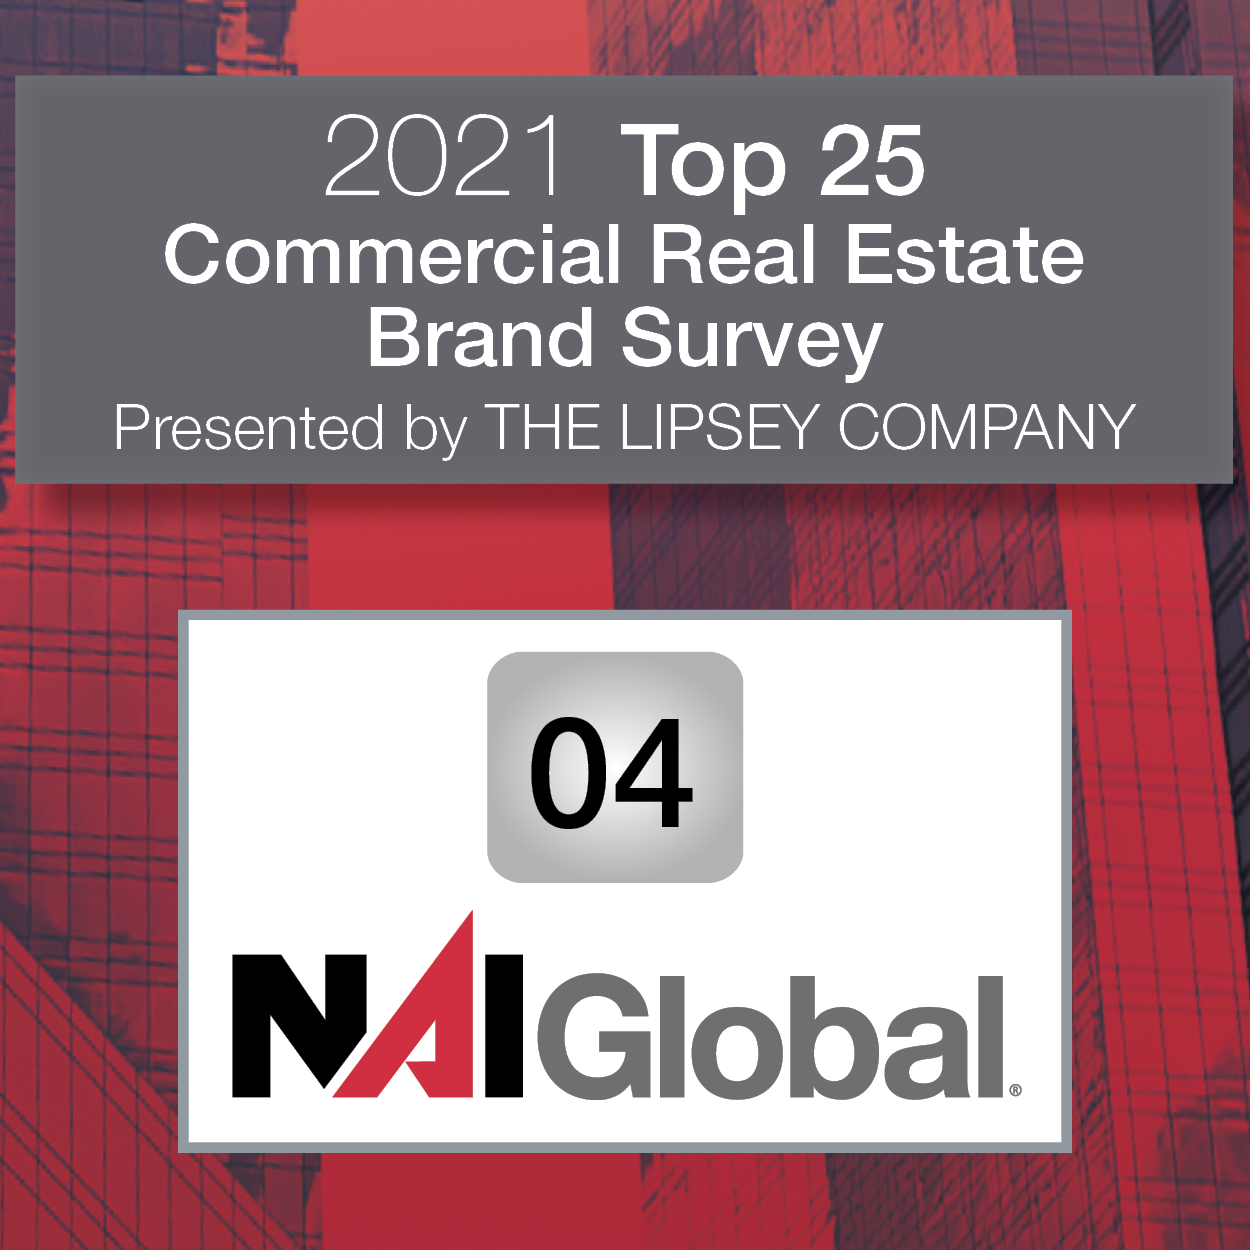 2021 Top 25 Commercial Real Estate Brand Survey